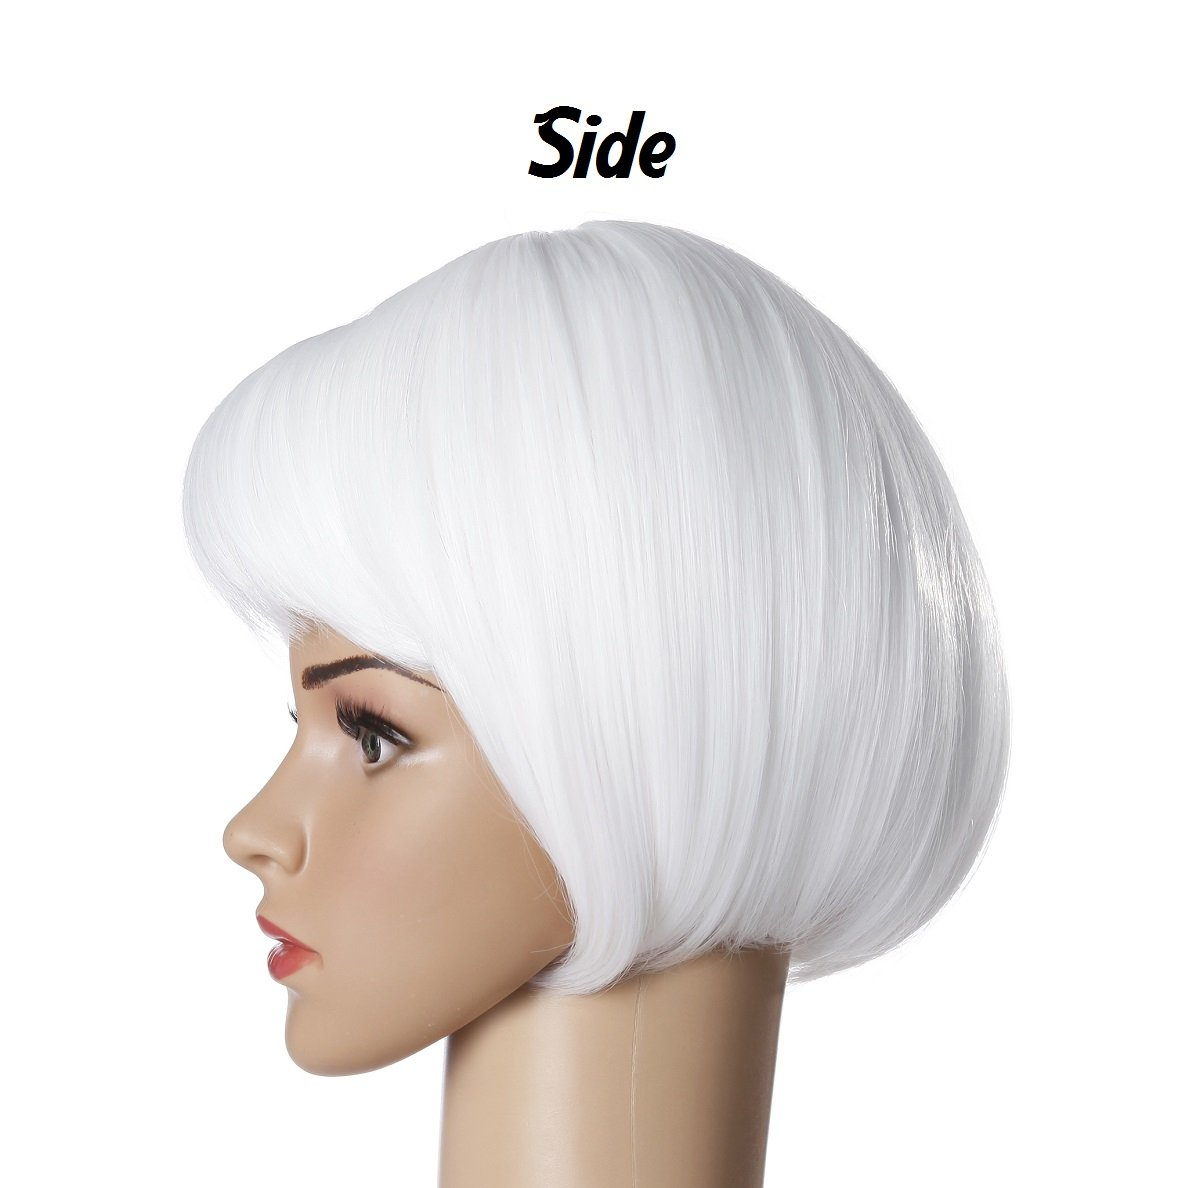 Short Straight Bob Hair Wigs 10'' Bright White Synthetic Party Costume Wig (White) by Liasun (Image #1)